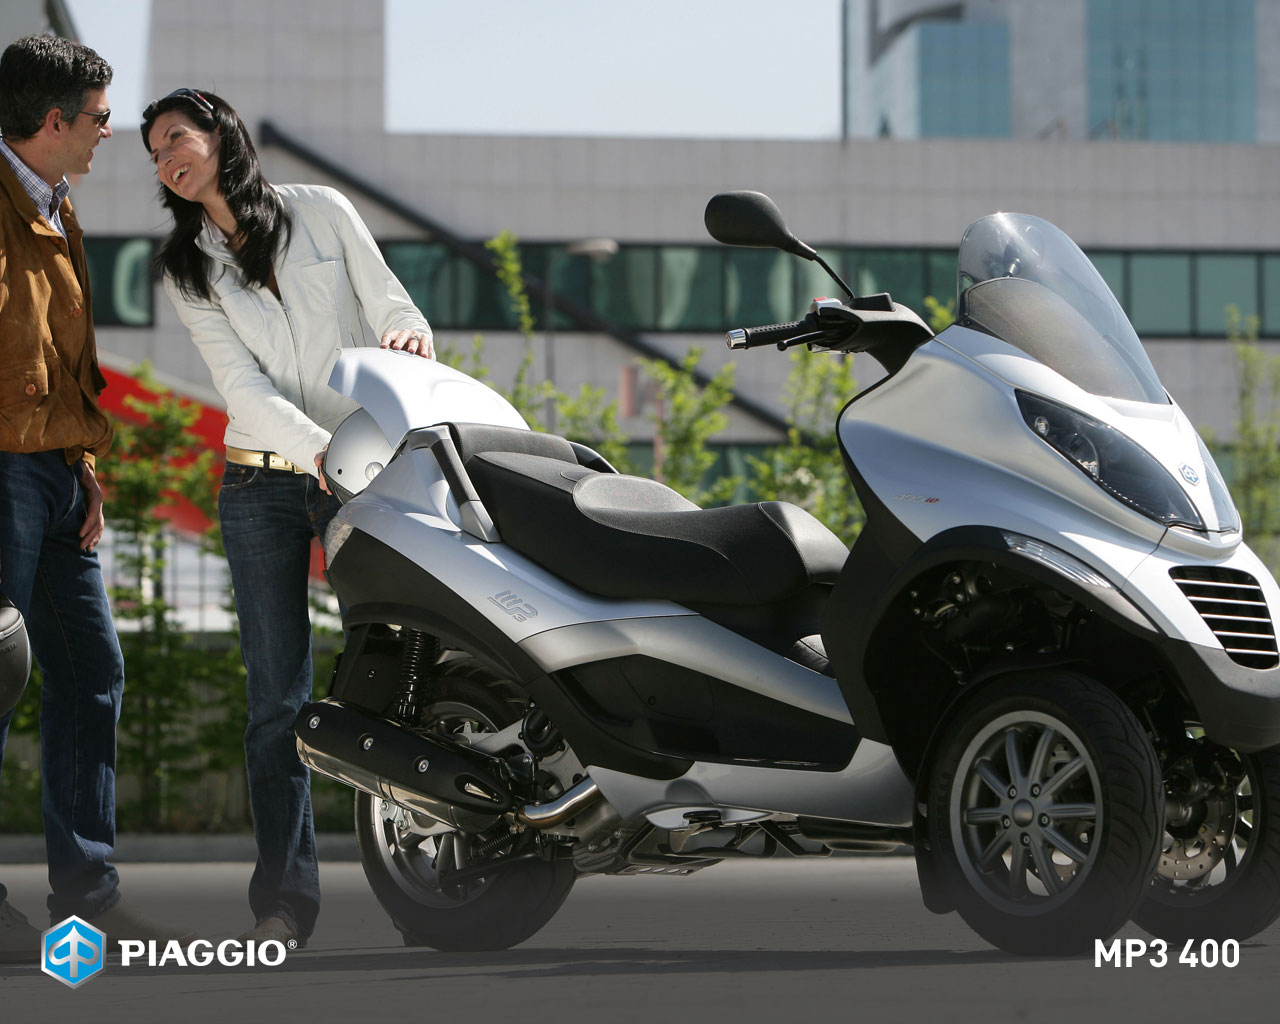 piaggio mp3 400 specs - 2009, 2010 - autoevolution